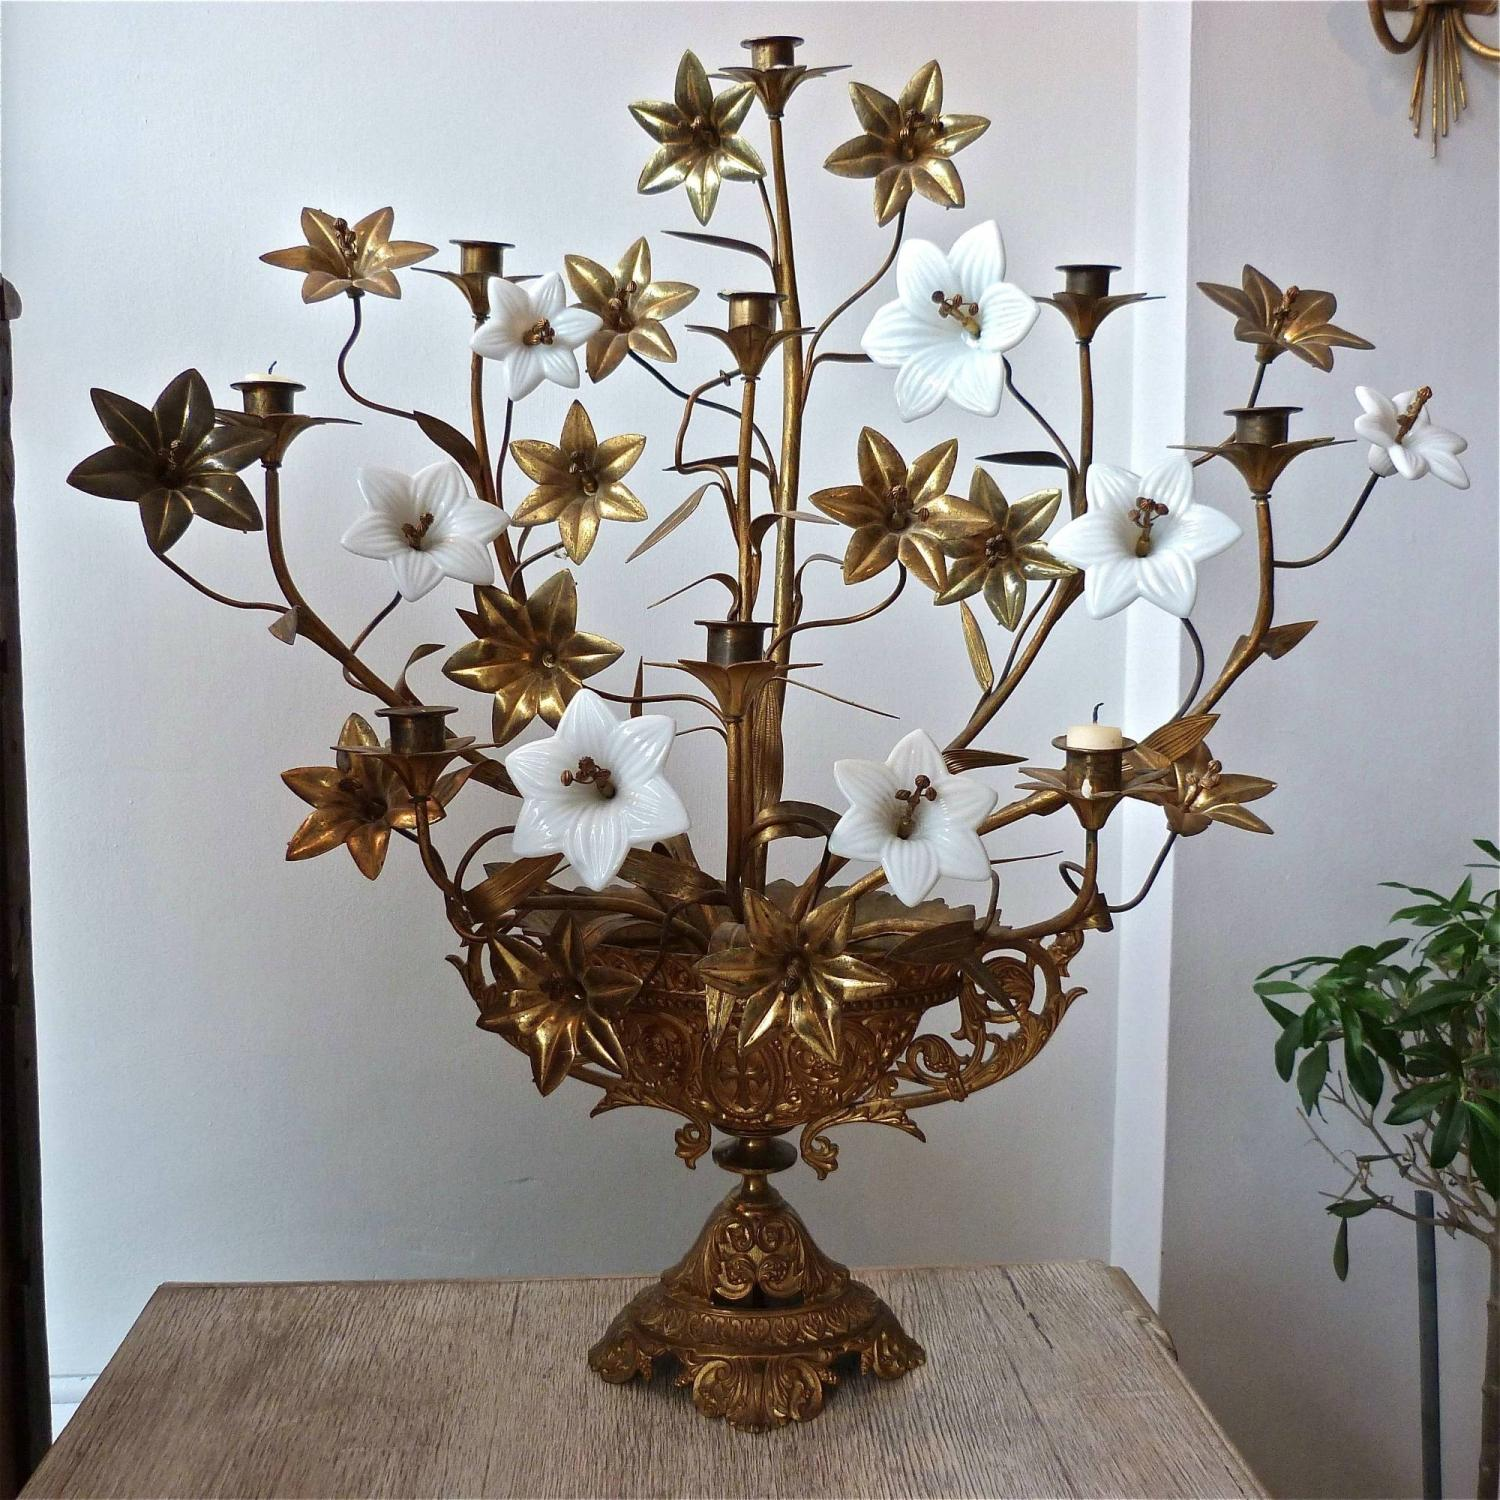 19TH CENTURY FRENCH CHURCH CANDELABRA